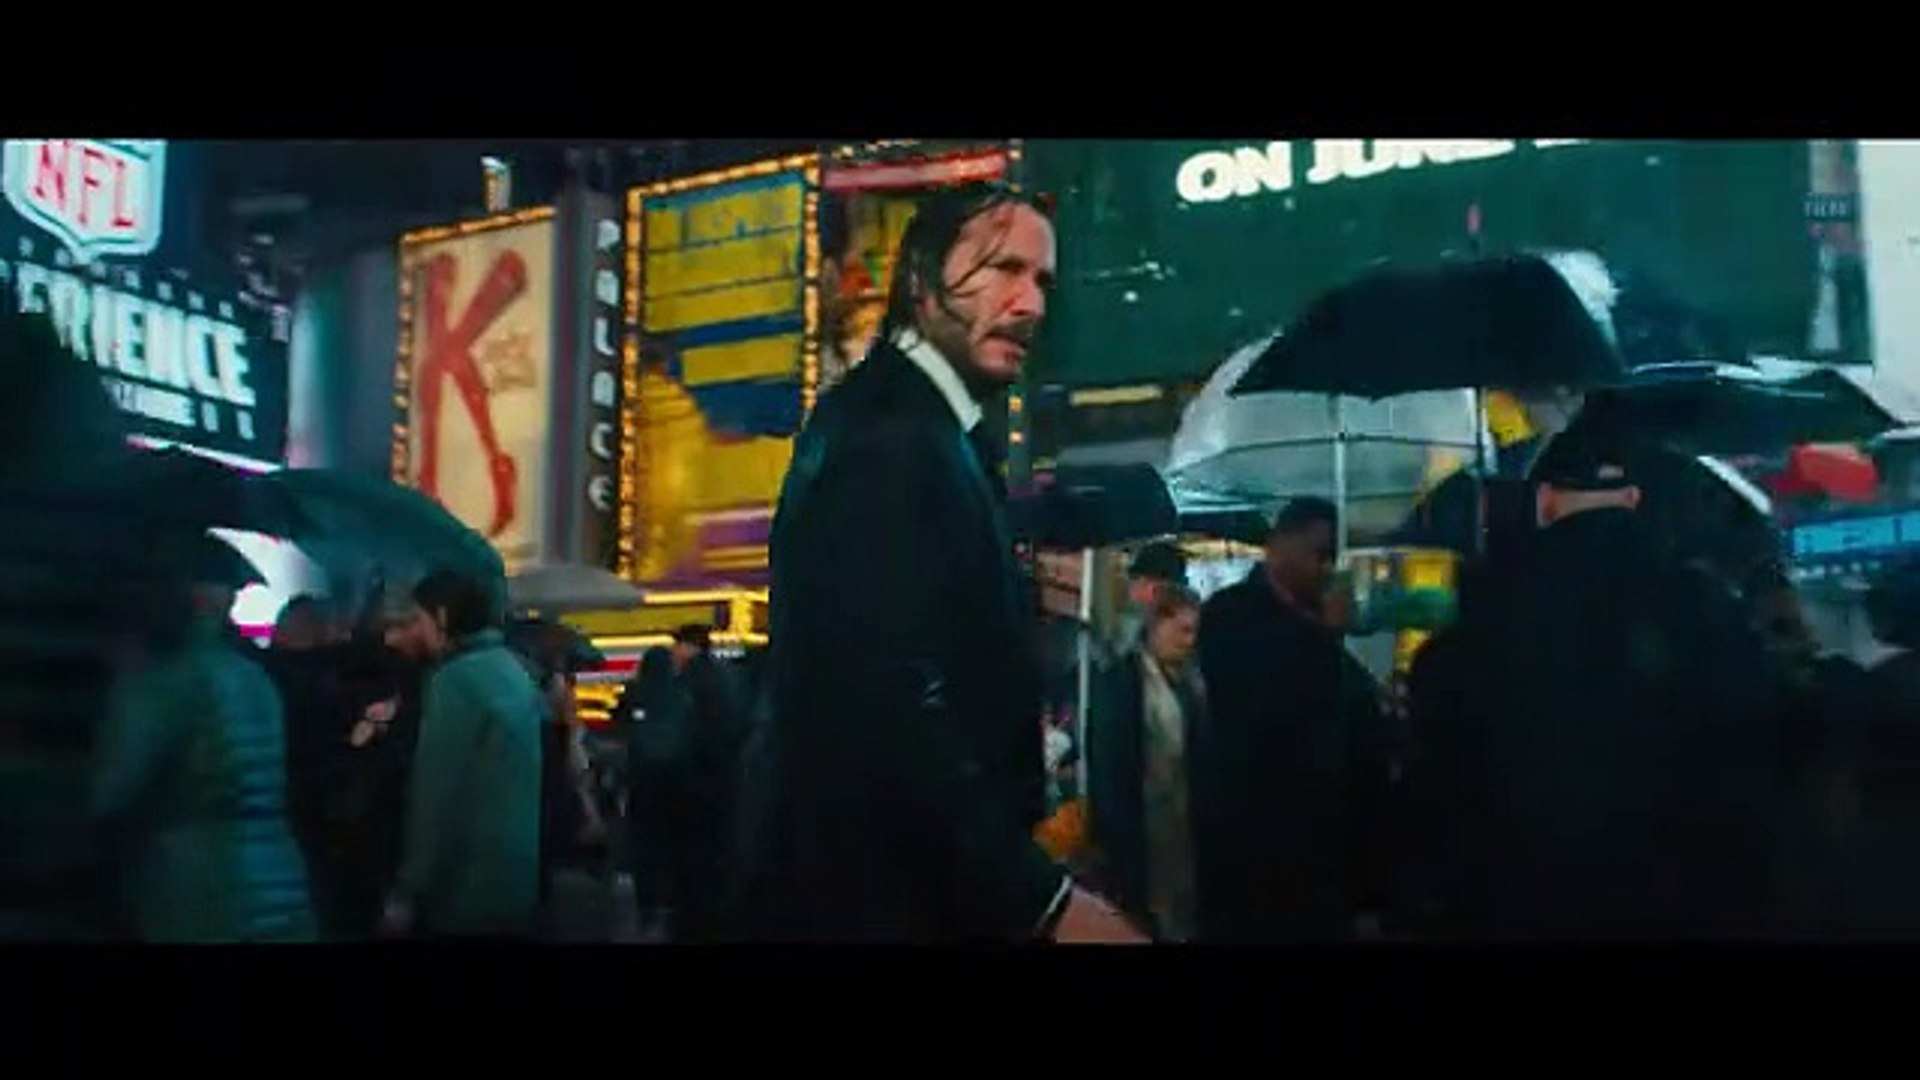 JOHN WICK CHAPTER 3 Official Trailer- Parabellum (2019) - Youtube